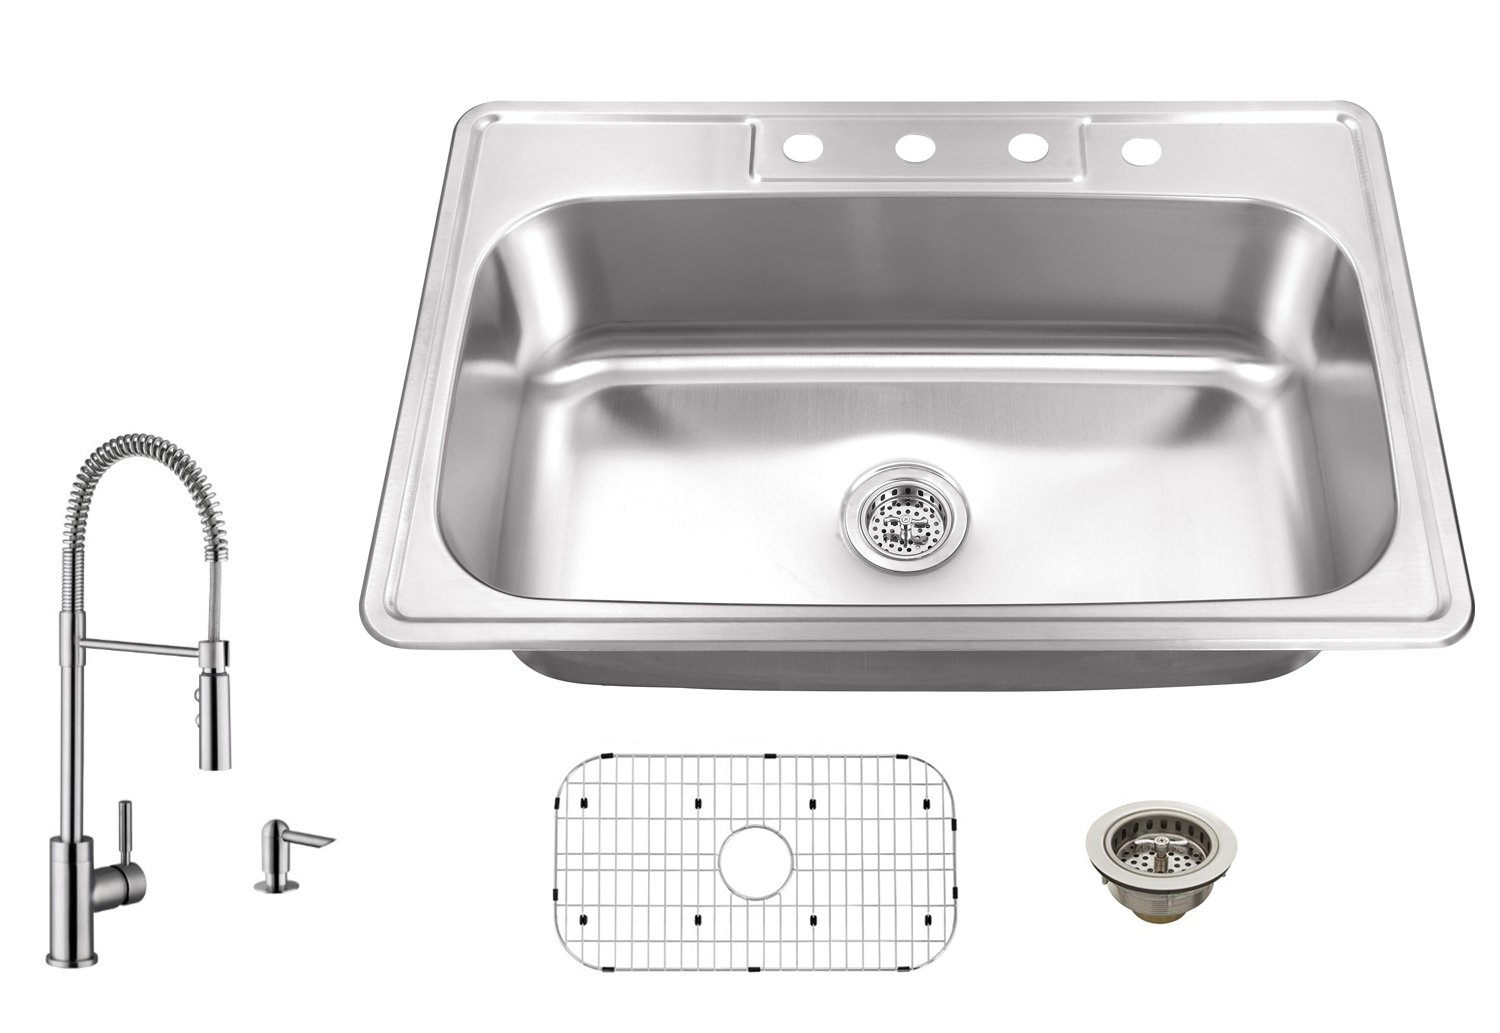 MSDP3322SBPGR7556 33-in x 22-in 20 Gauge Stainless Steel Single Bowl Kitchen Sink with Pull Out Kitchen Faucet and Soap Dispenser